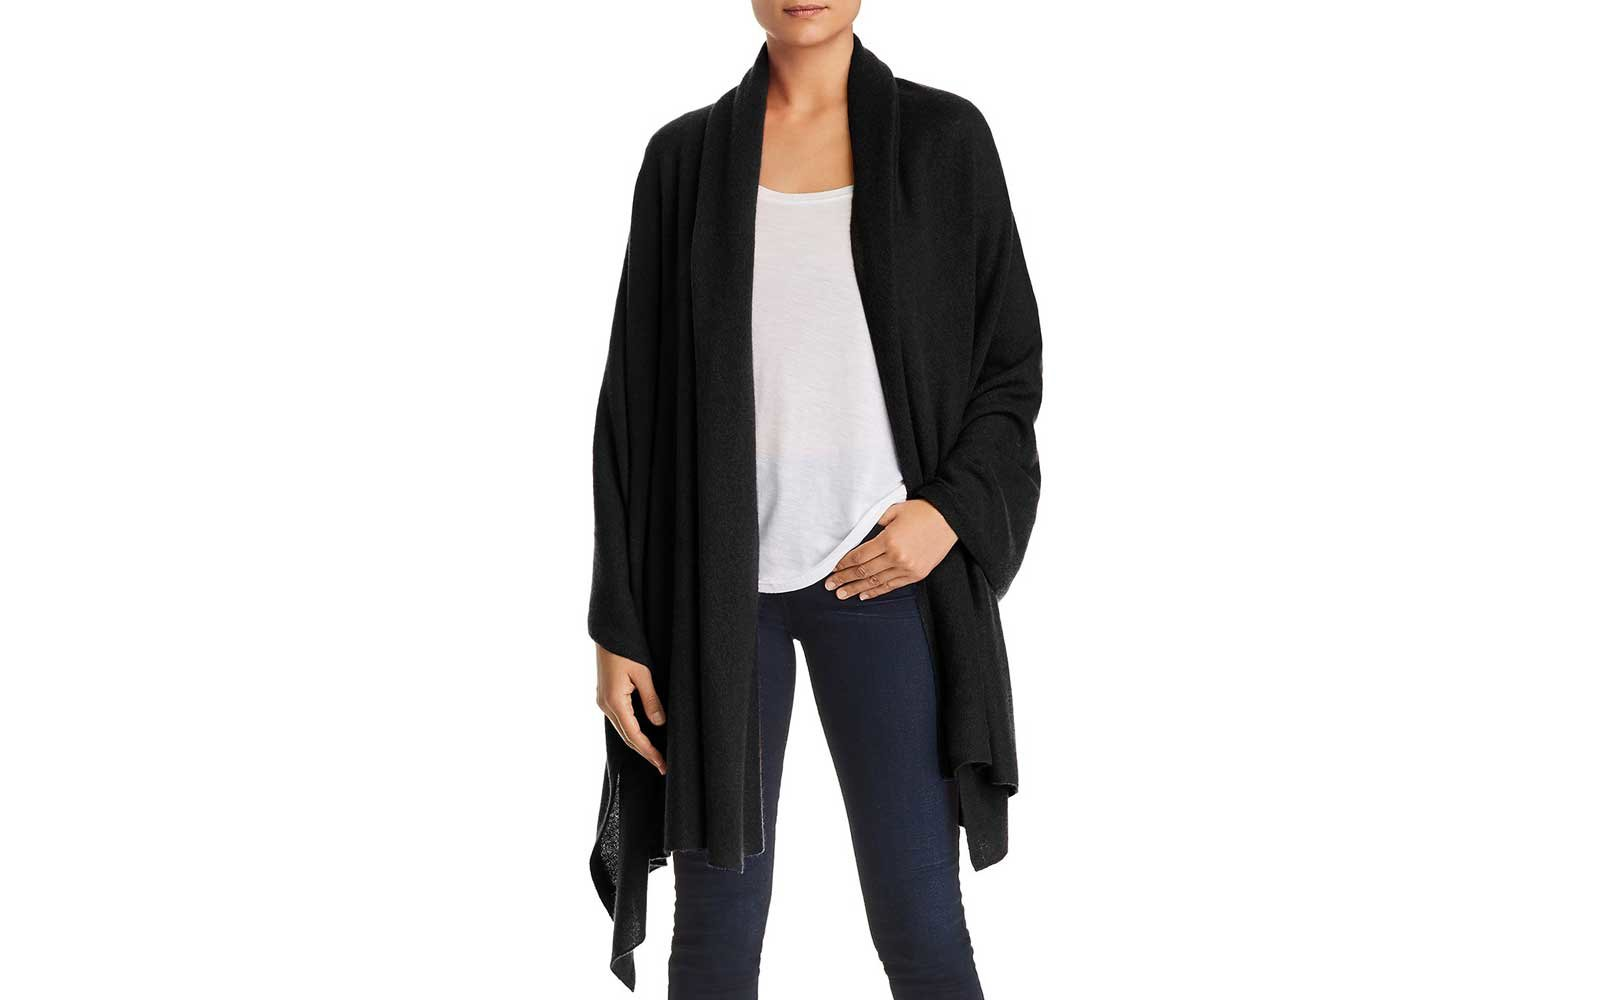 Lightweight Cashmere Travel Wrap